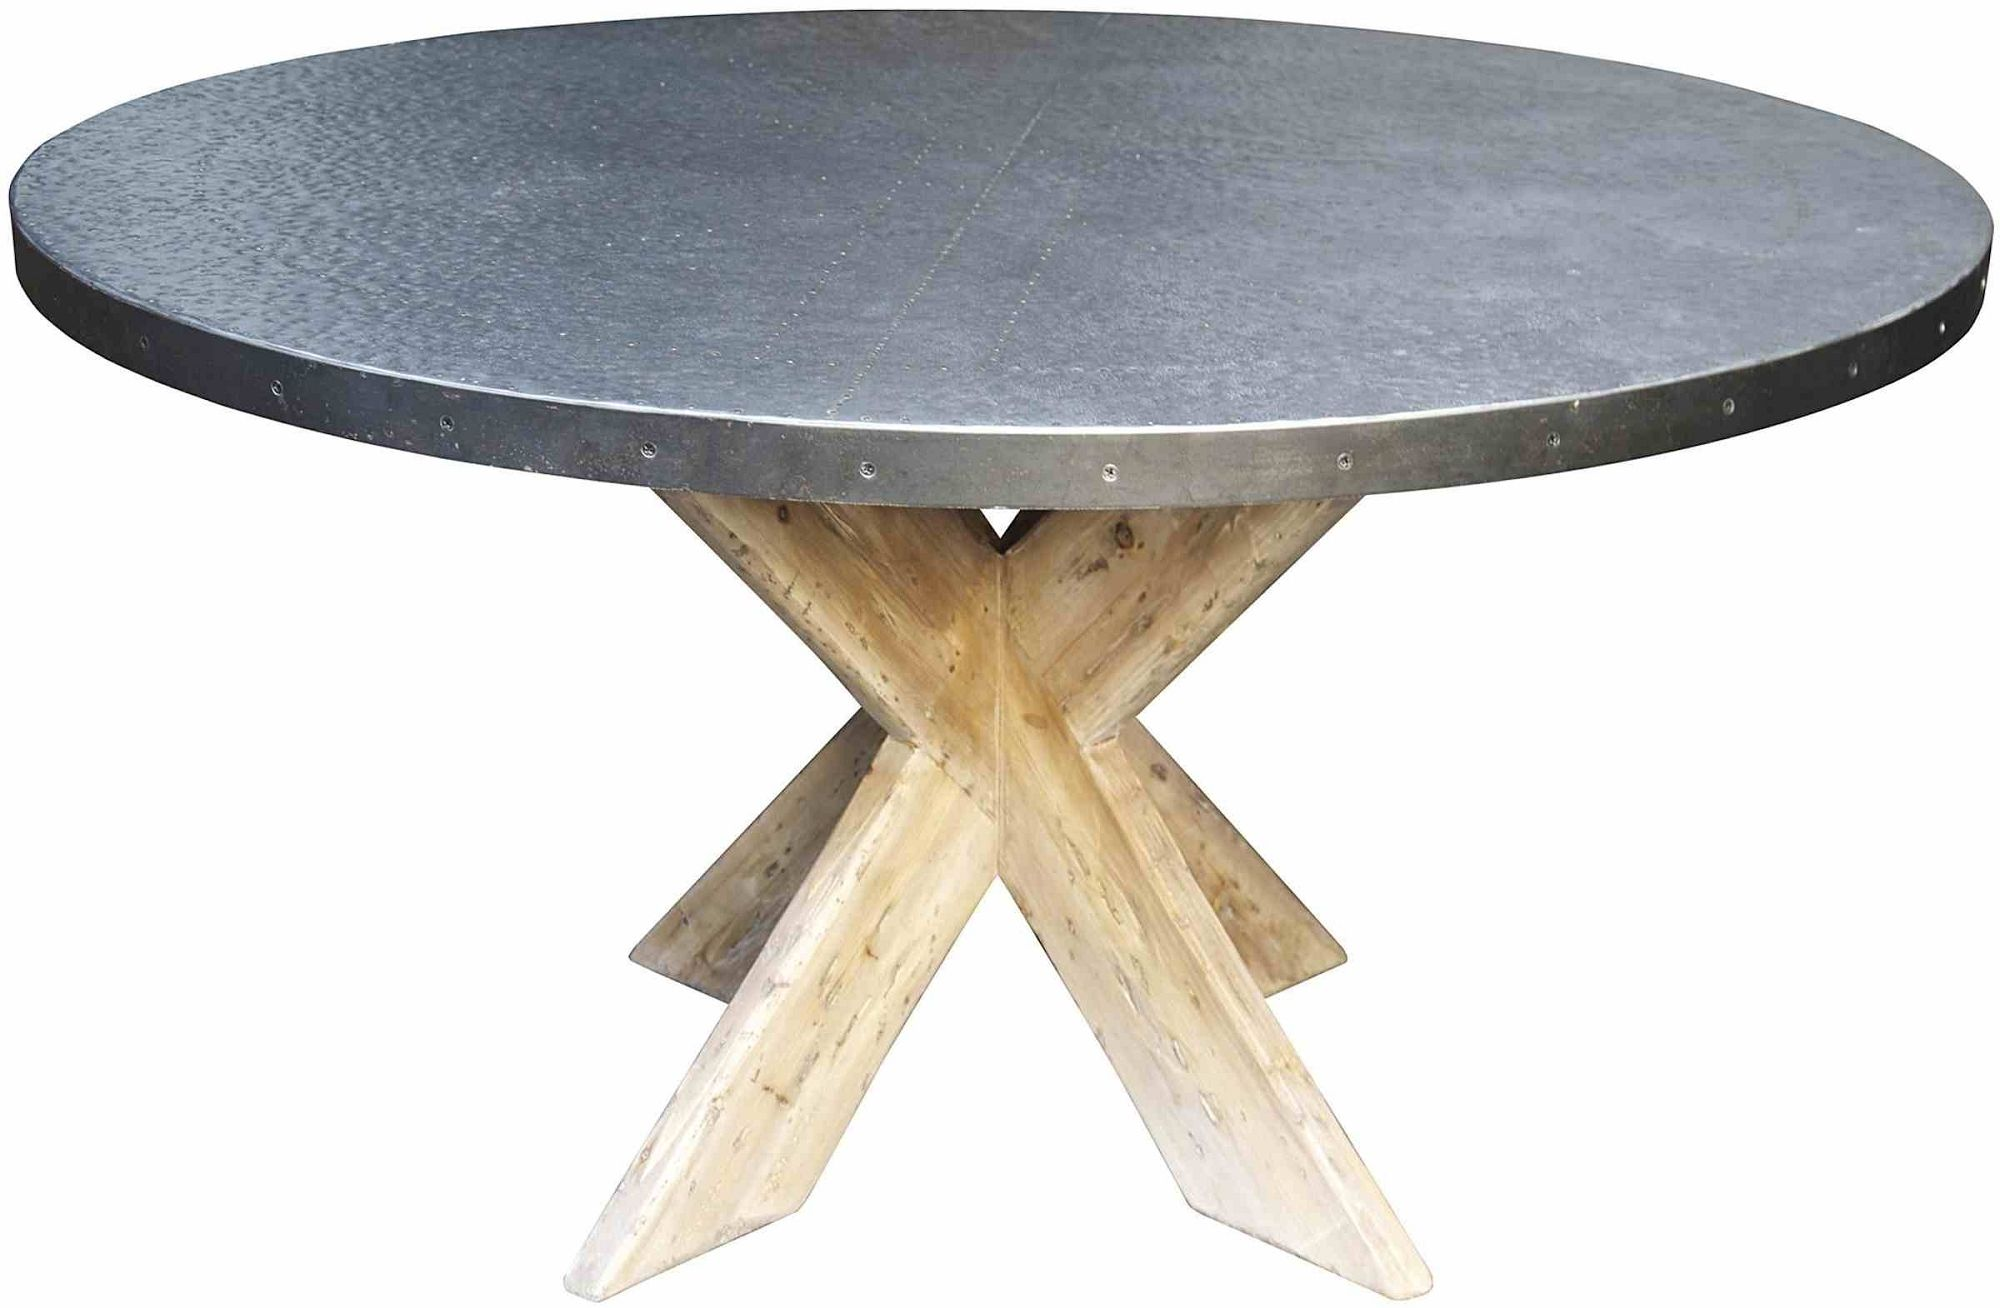 Exceptional Hayward Zinc Top Round Dining Table With X Base